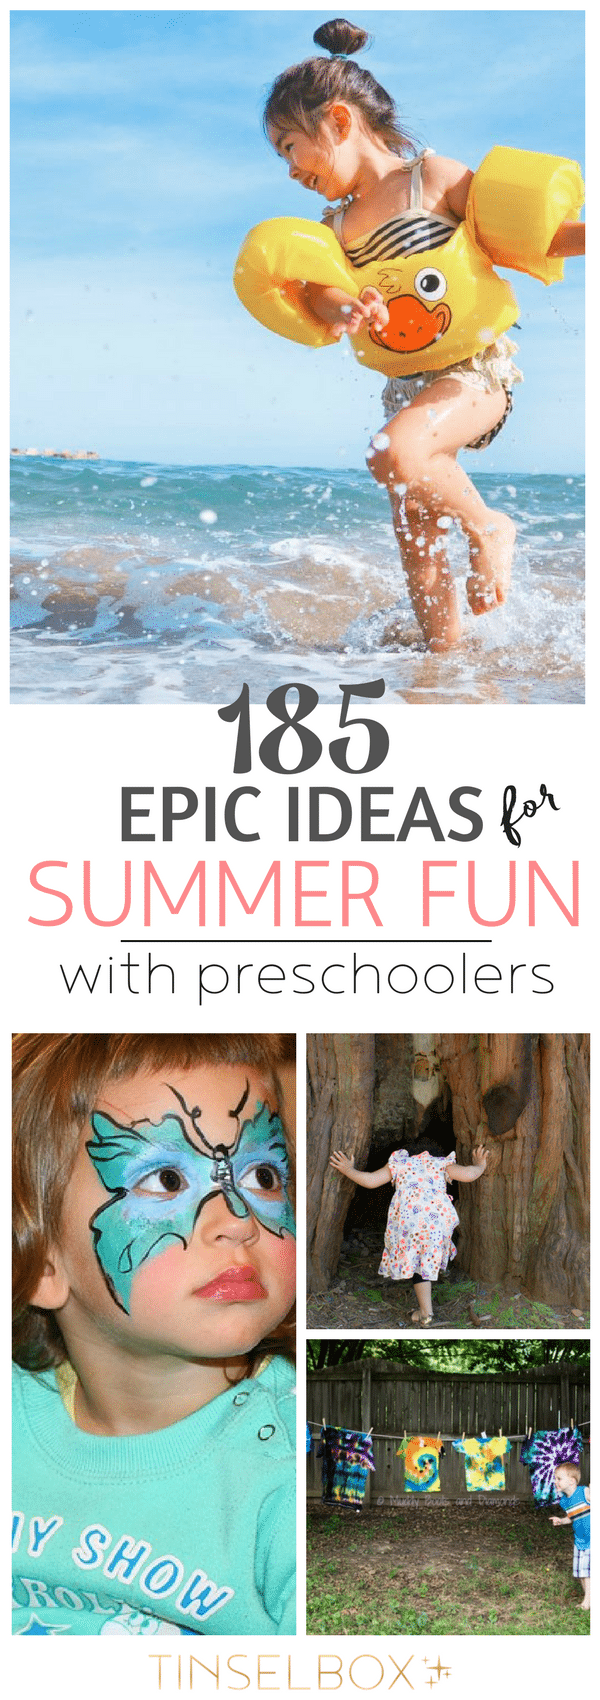 185 Epic Ideas for Summer Fun with Preschoolers